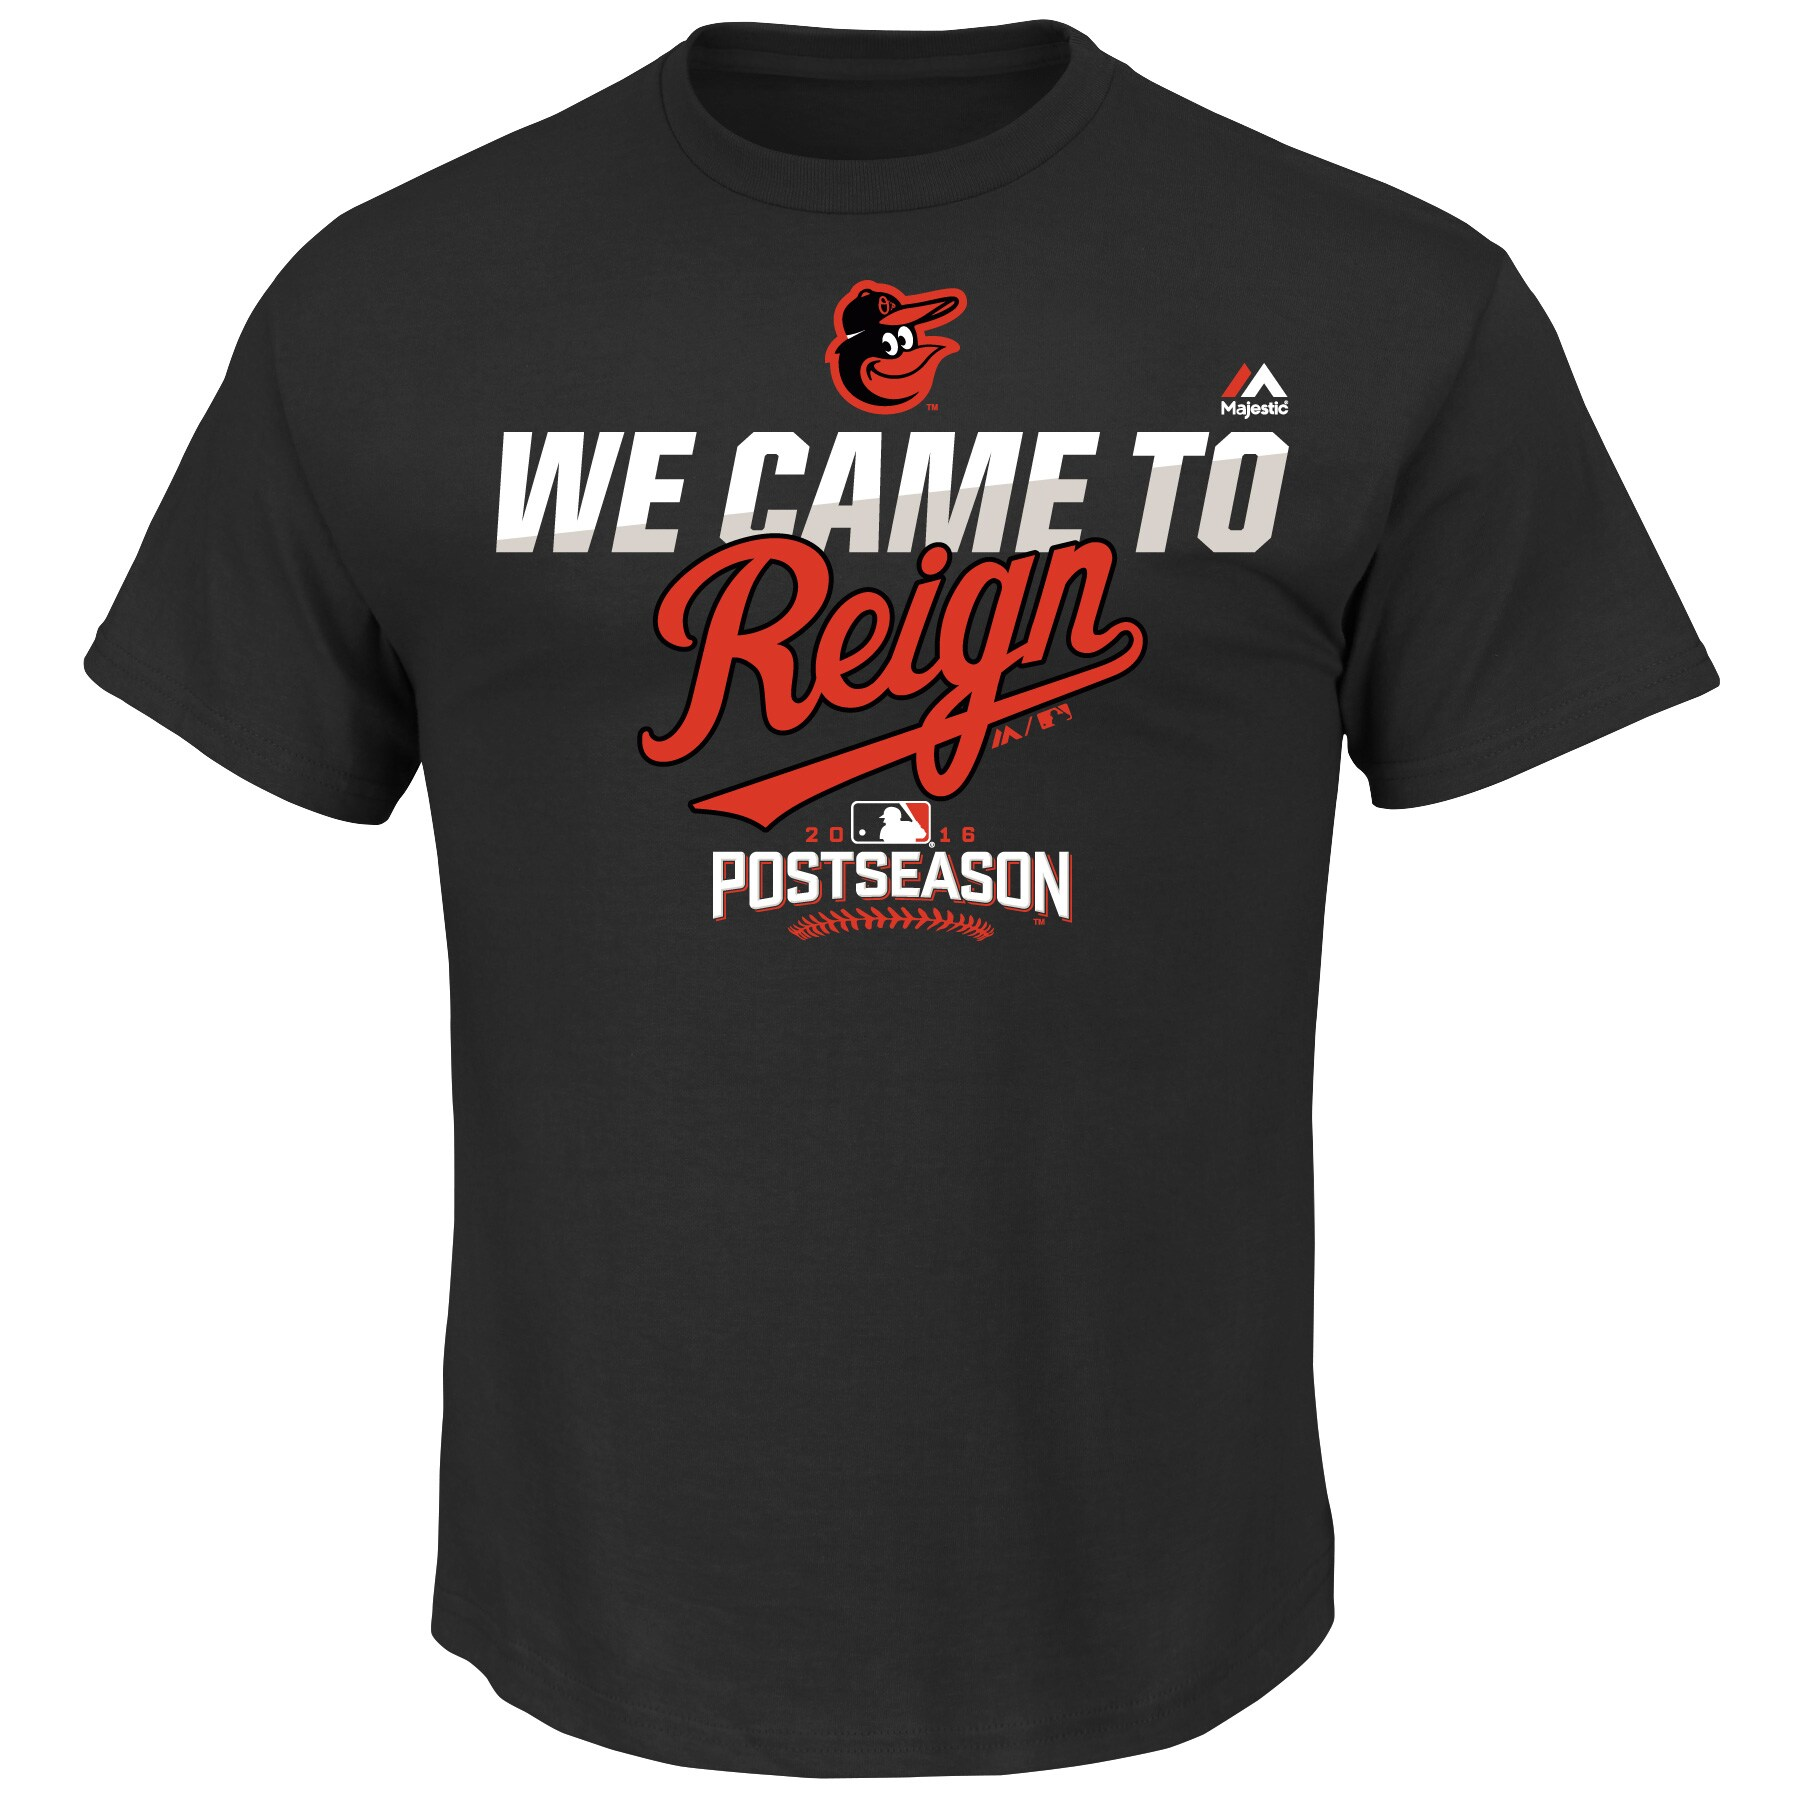 Baltimore Orioles Majestic Big & Tall 2016 Postseason Authentic Collection We Came to Reign T-Shirt - Black